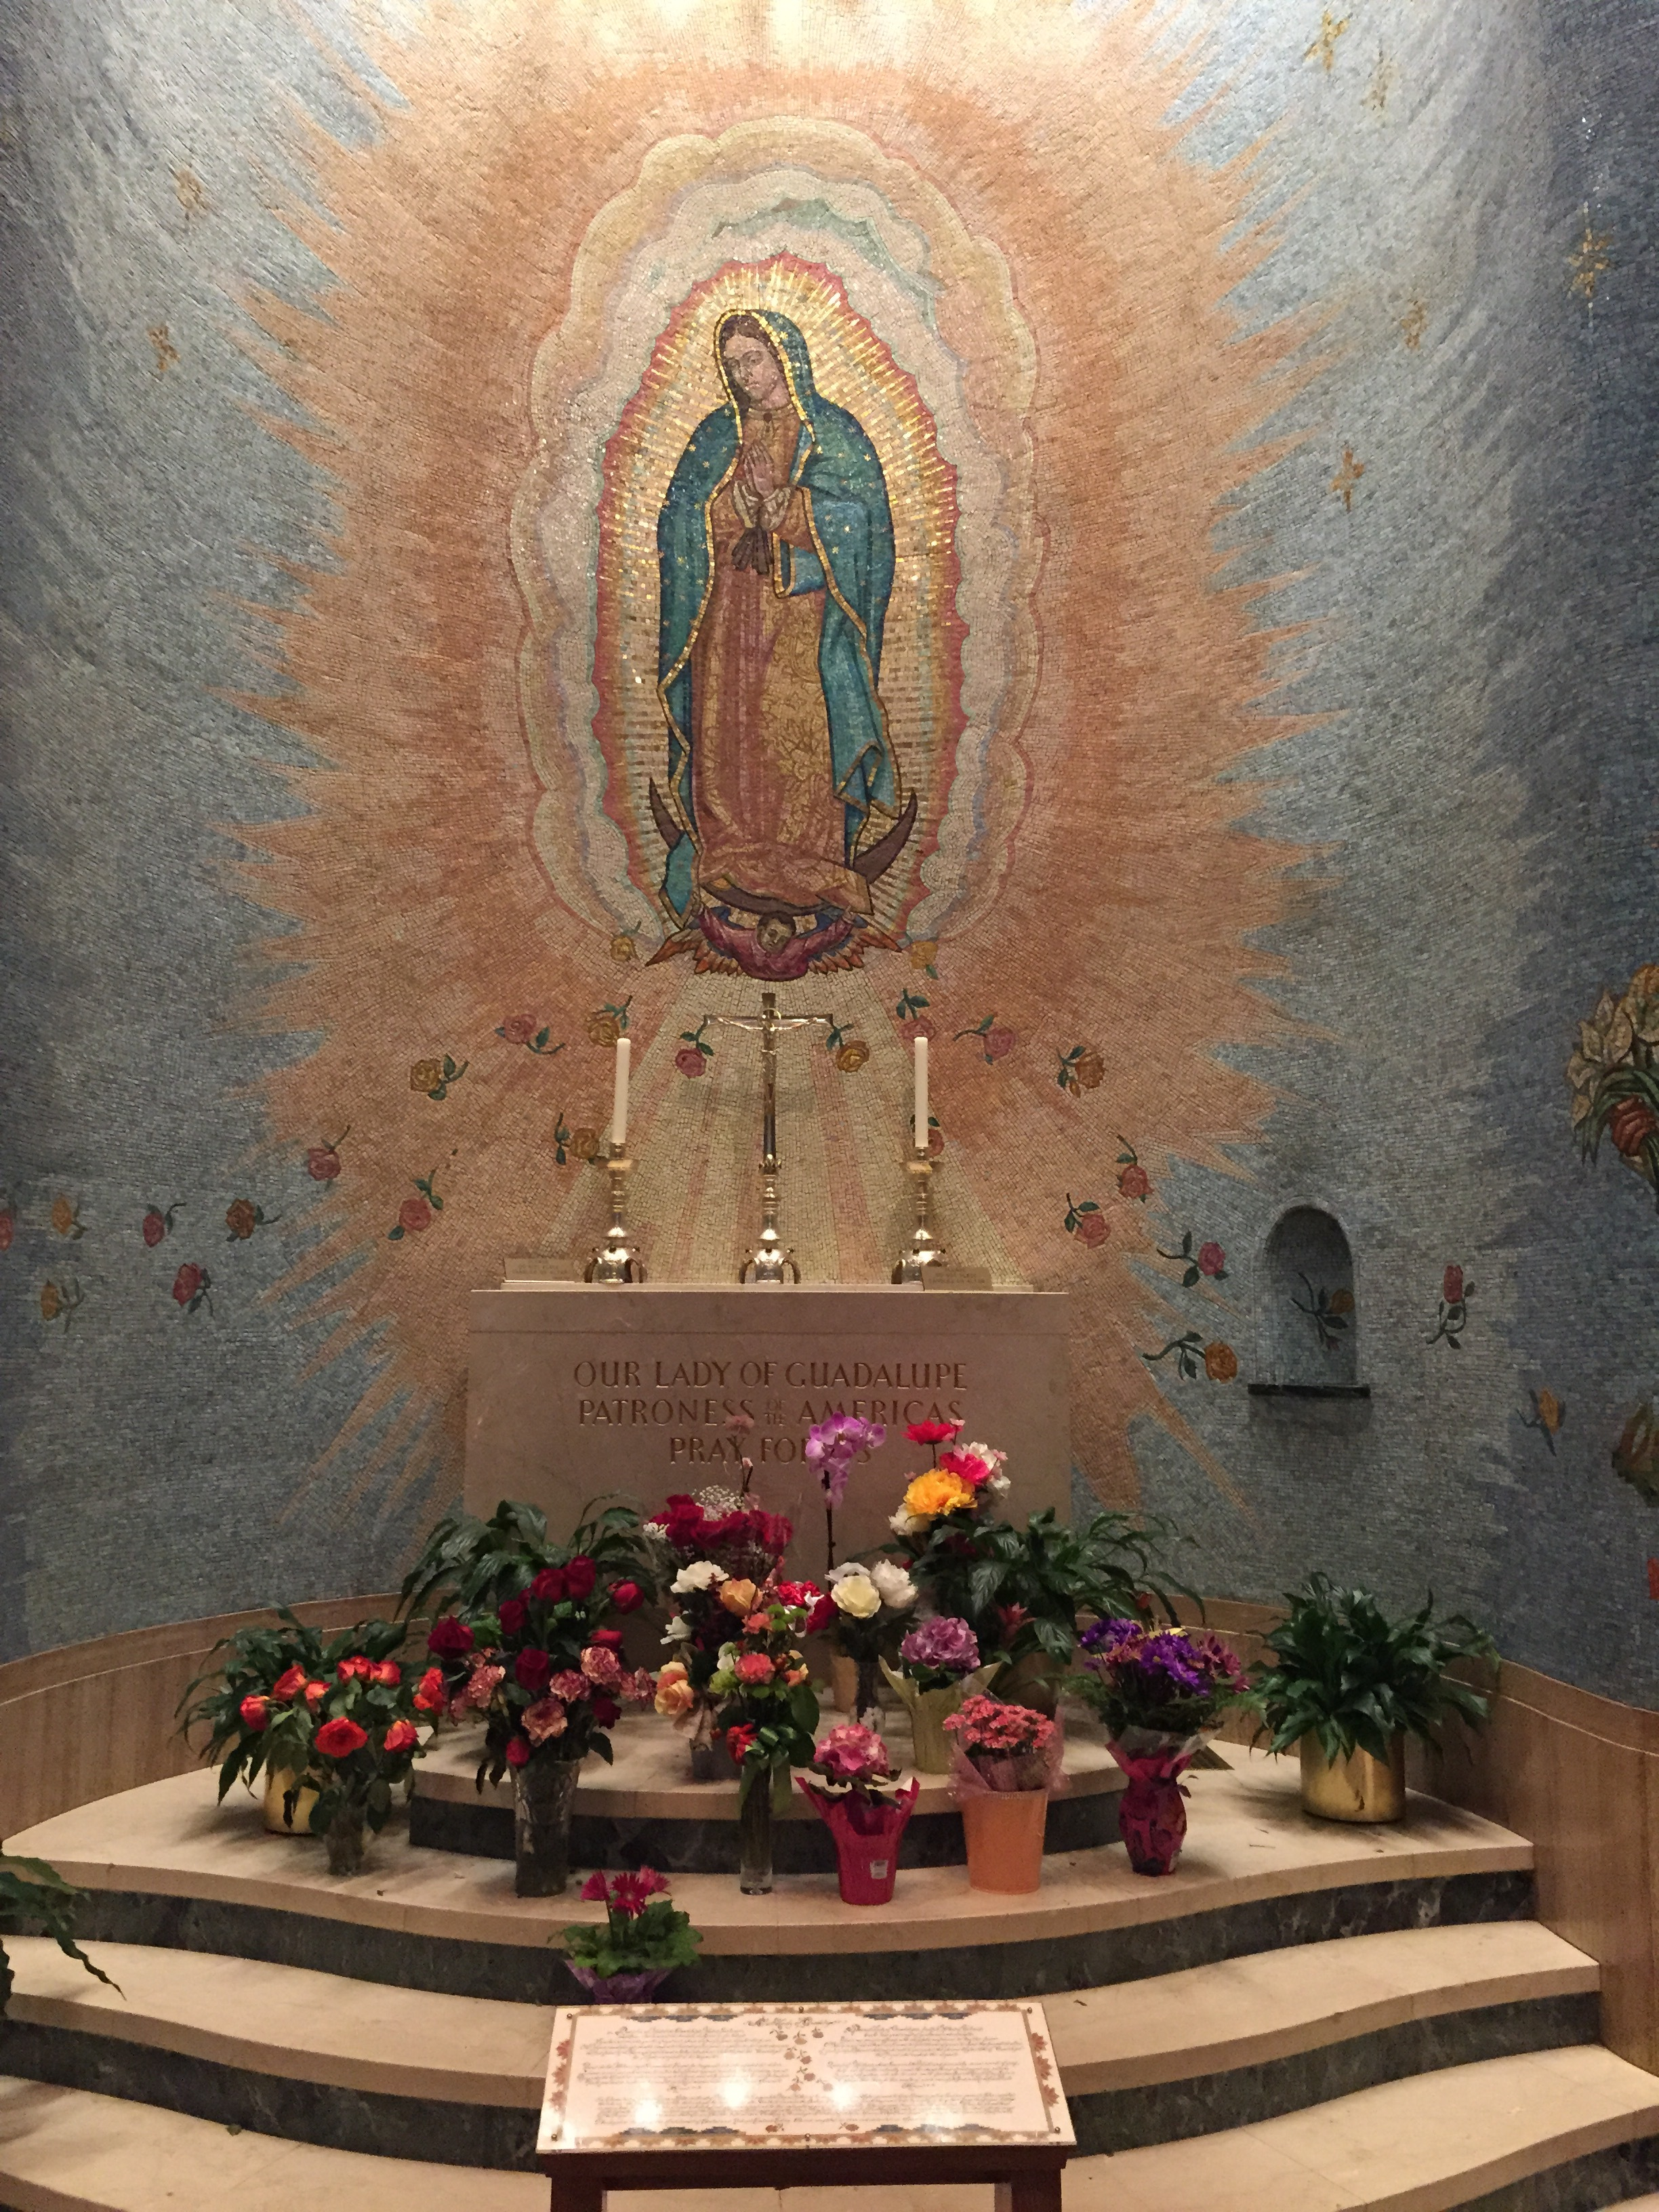 The Our Lady of Guadalupe mural at the National Basilica